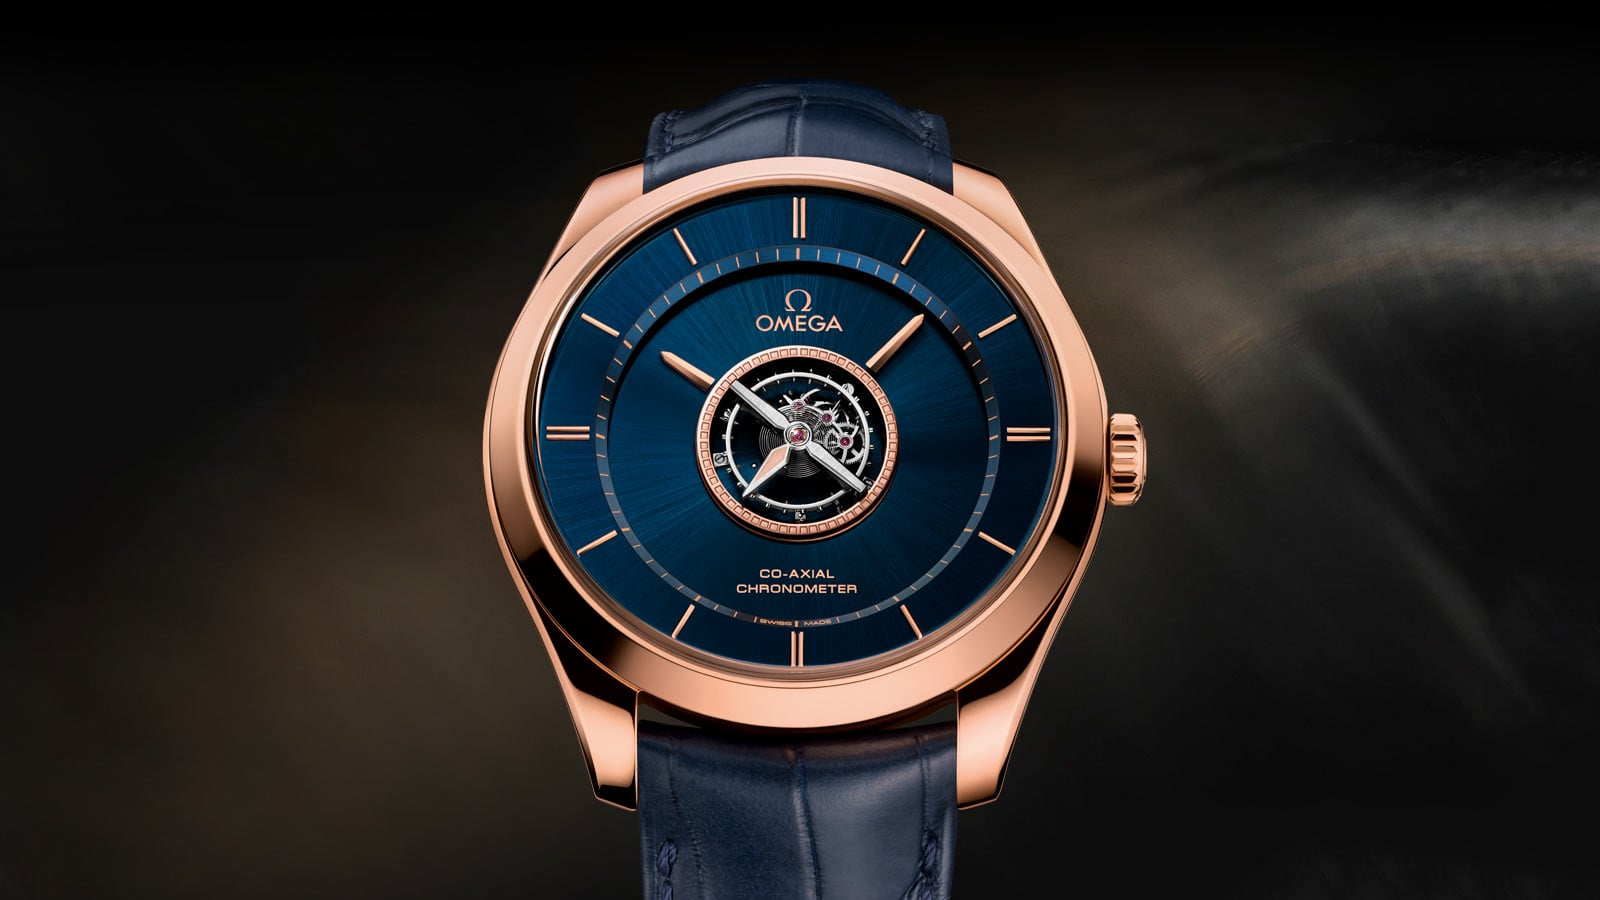 Front view of the blue Tourbillon watch with a visible mechanism